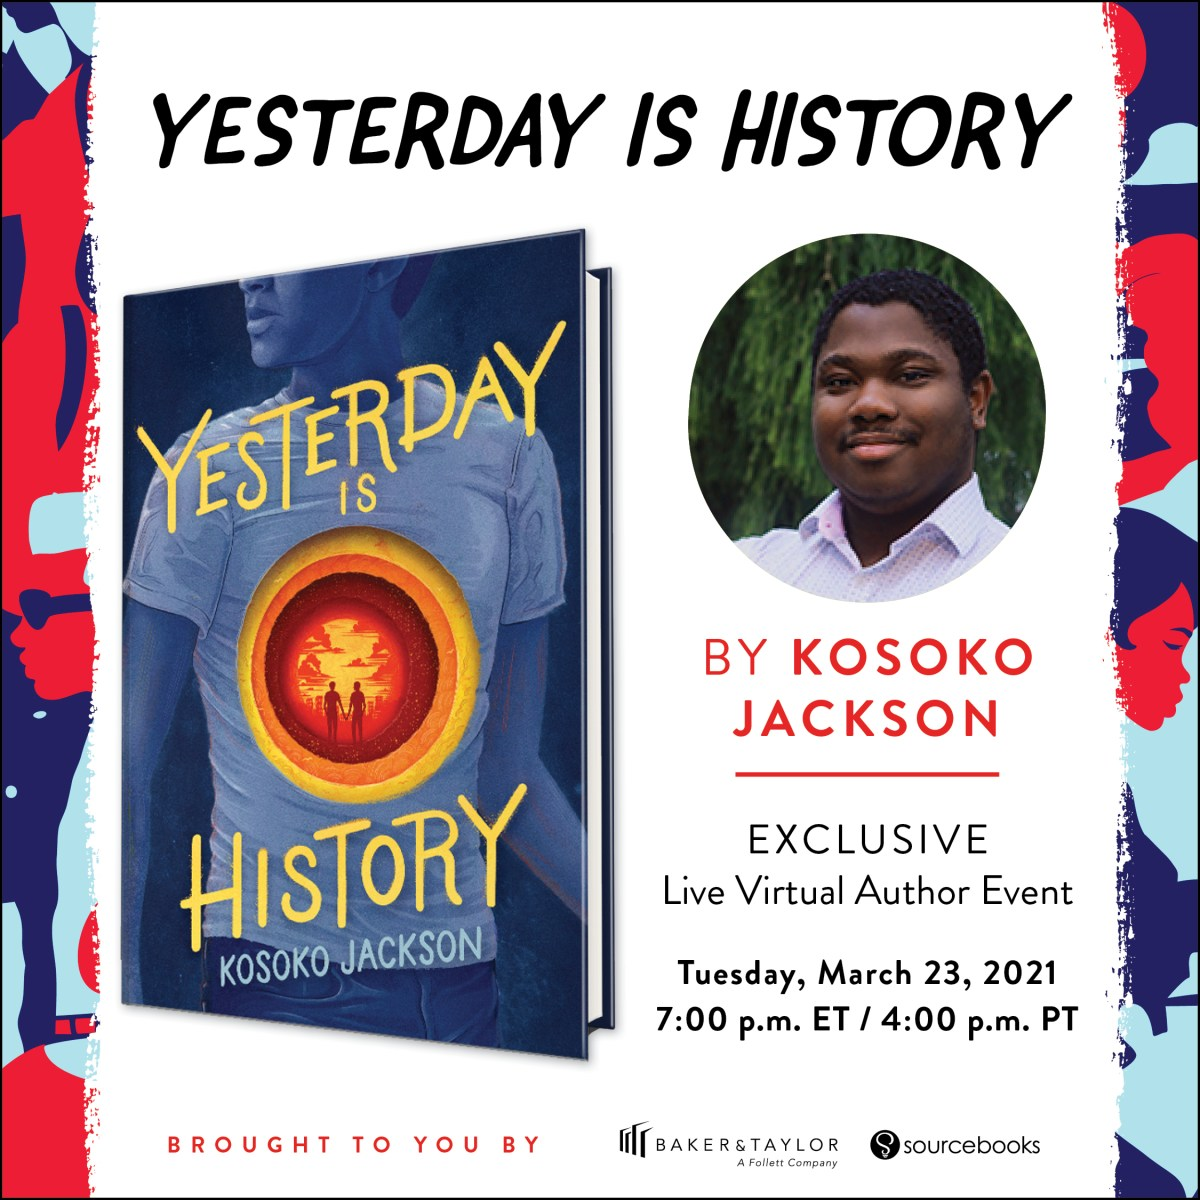 Yesterday is History by Kosoko Jackson book club and live, virtual author event flyer image.